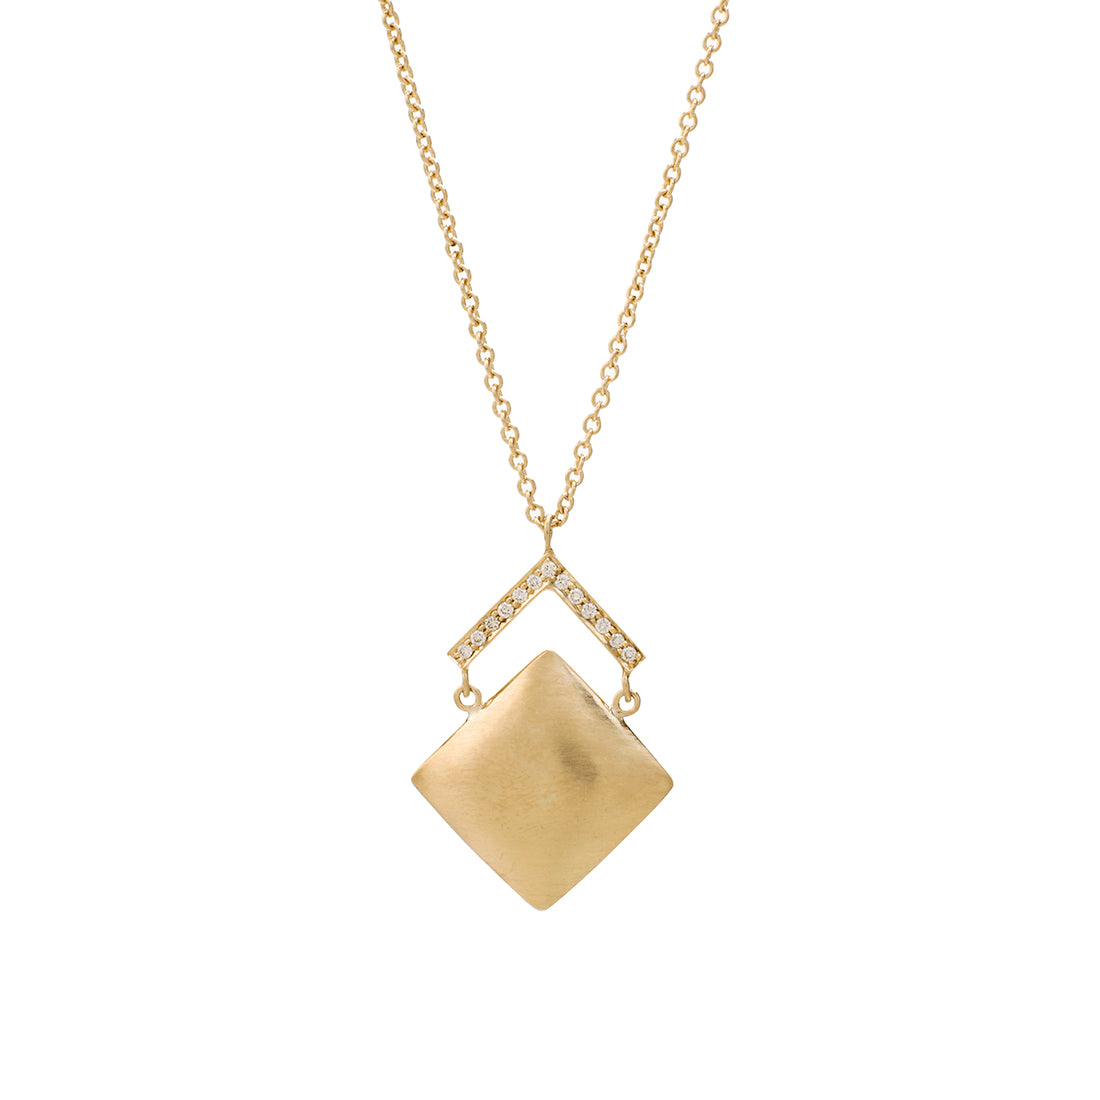 Satin Finish Diamond Chevron Pendant, 18K Yellow Gold